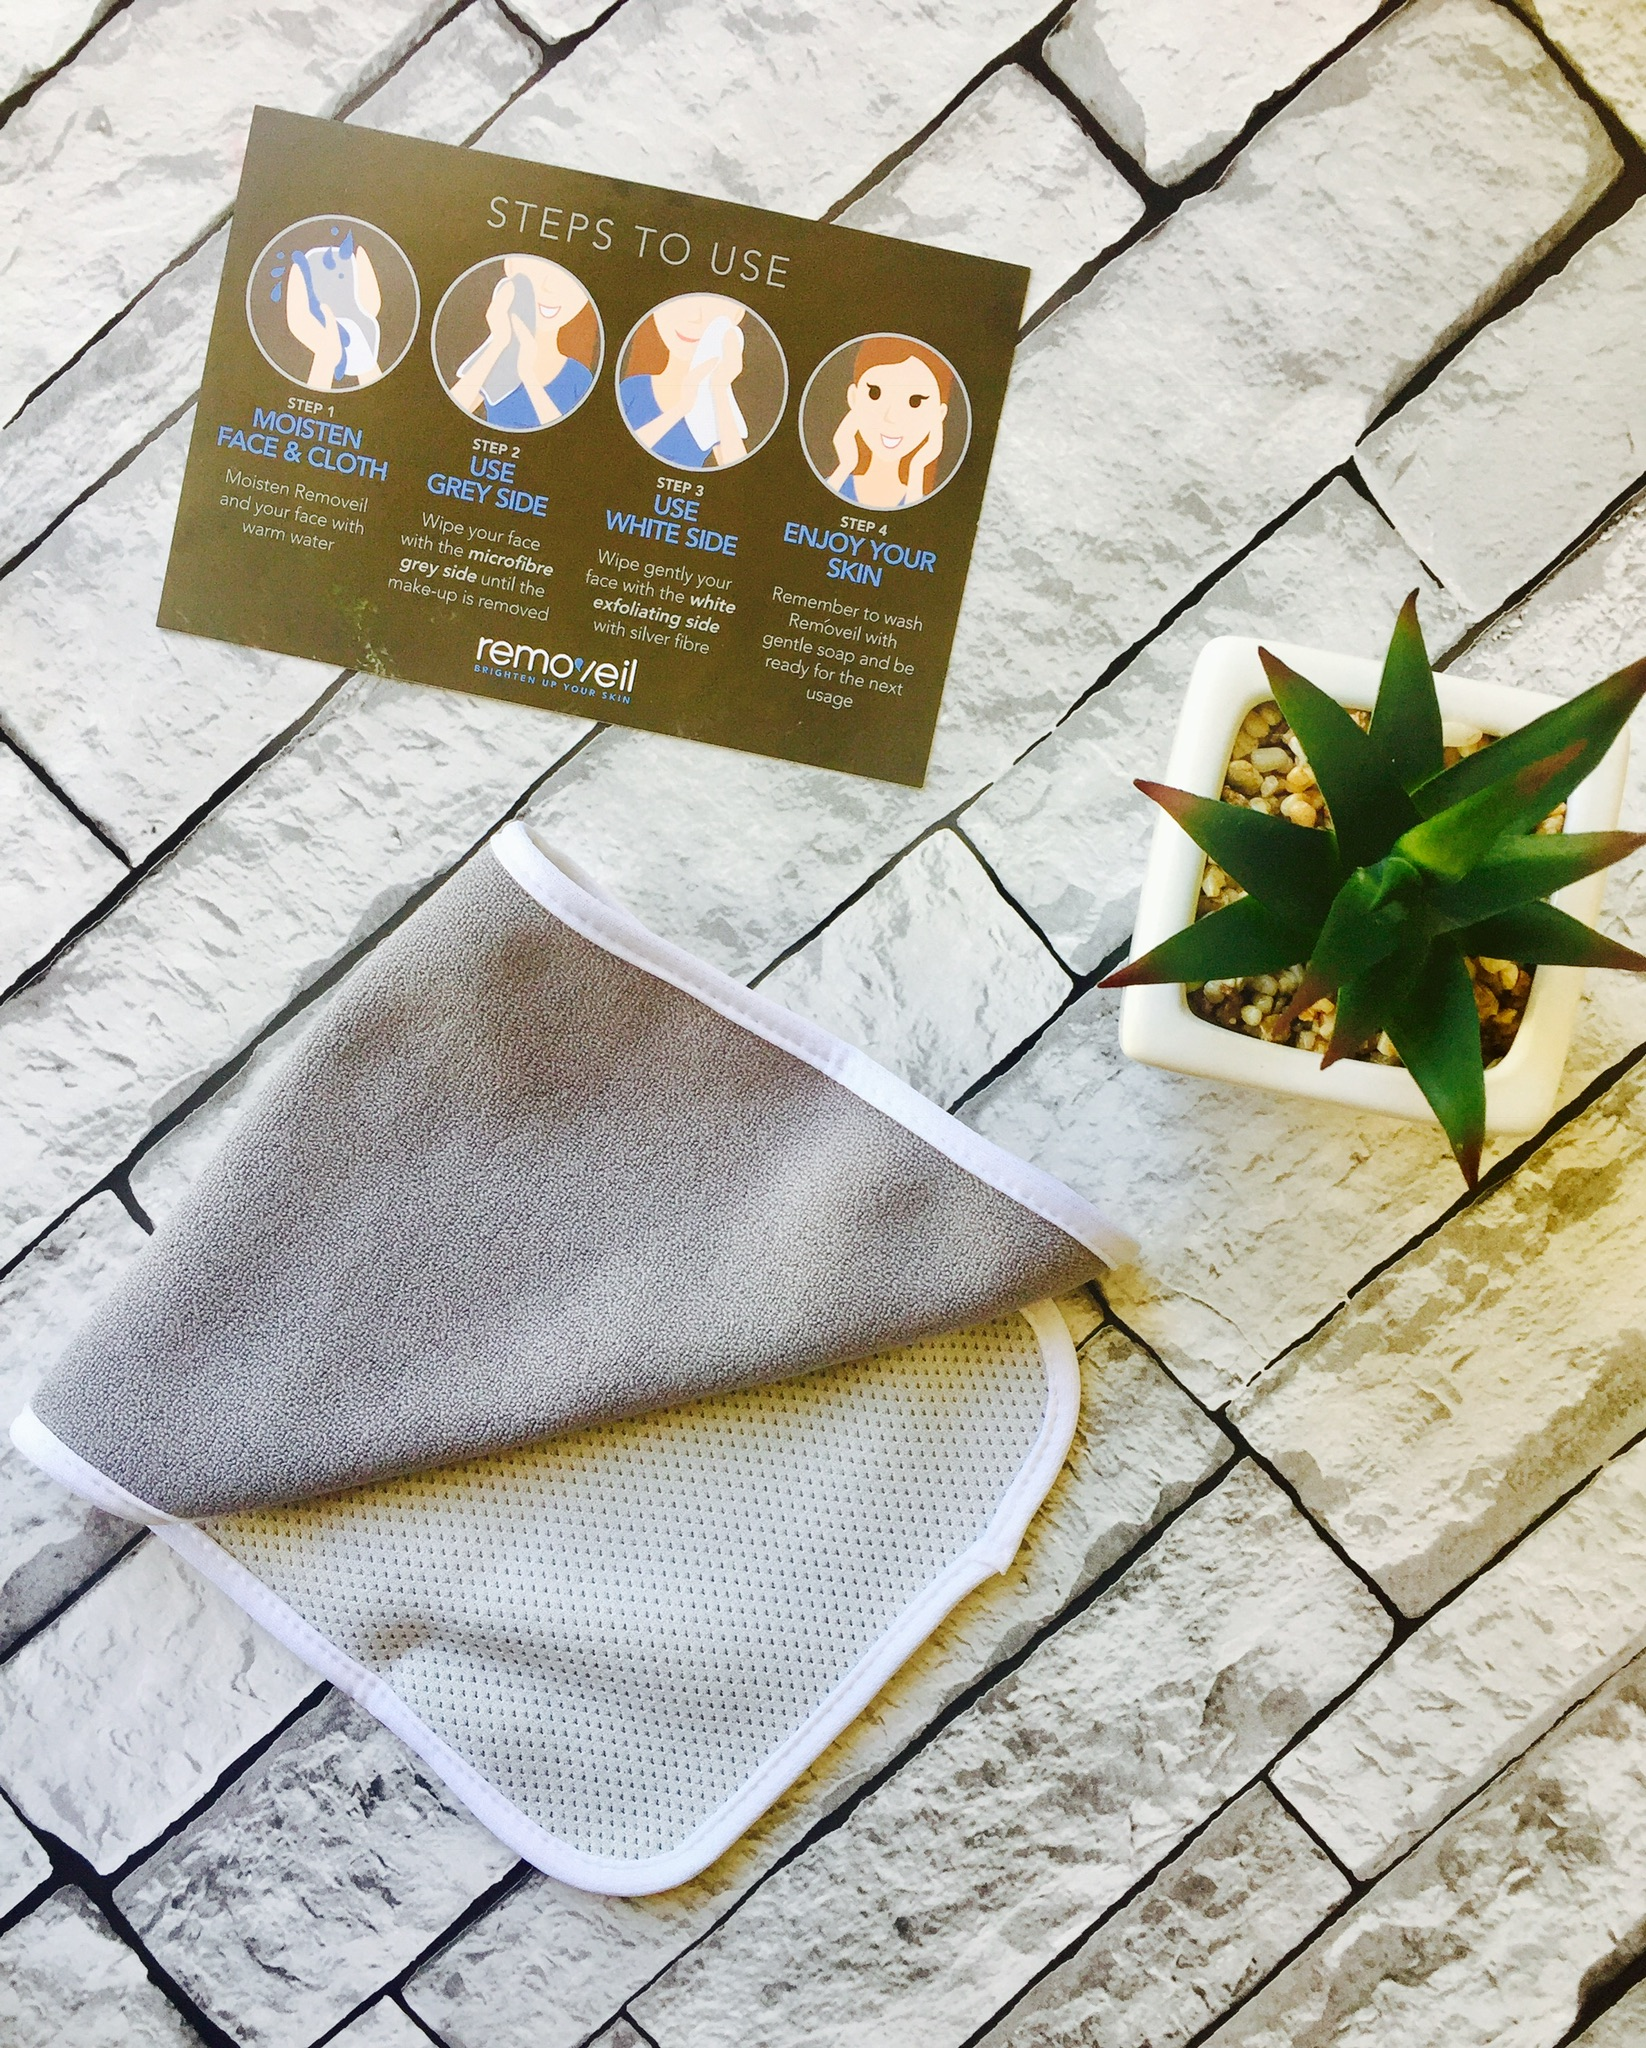 Removeil makeup cleansing exfoliating cloth